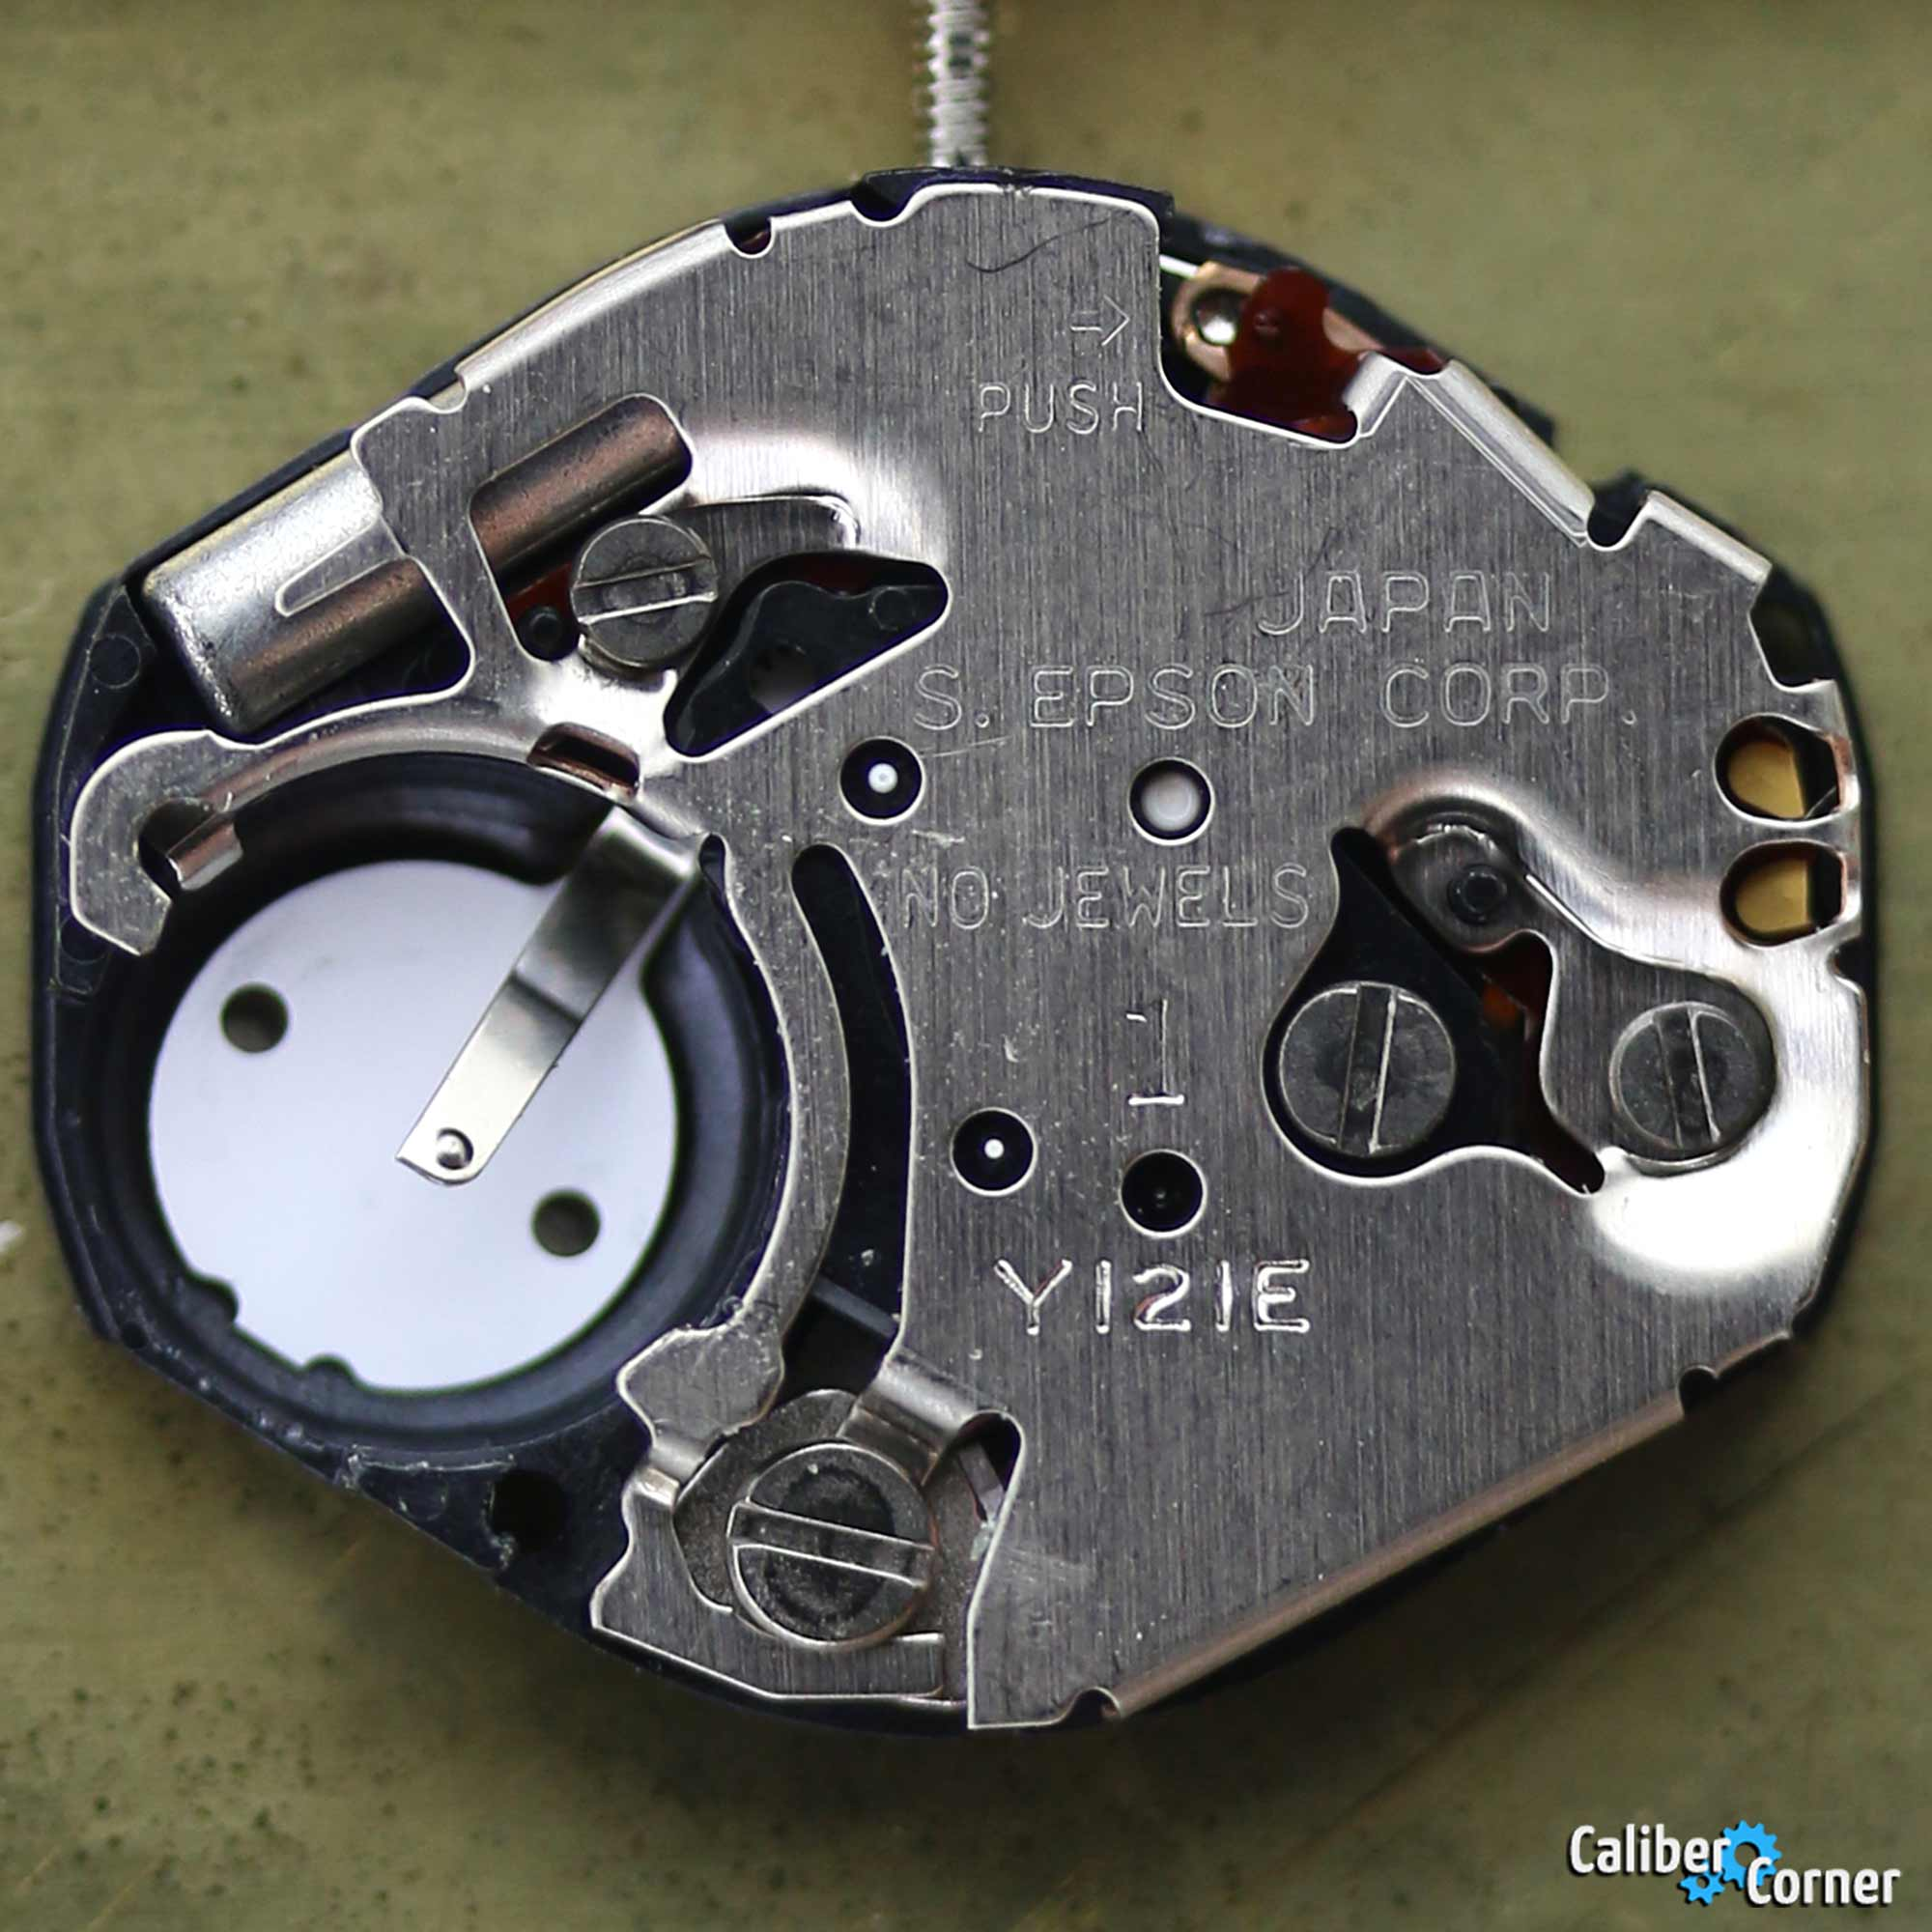 Seiko Epson Hattori Japan caliber Y121 Watch Movement